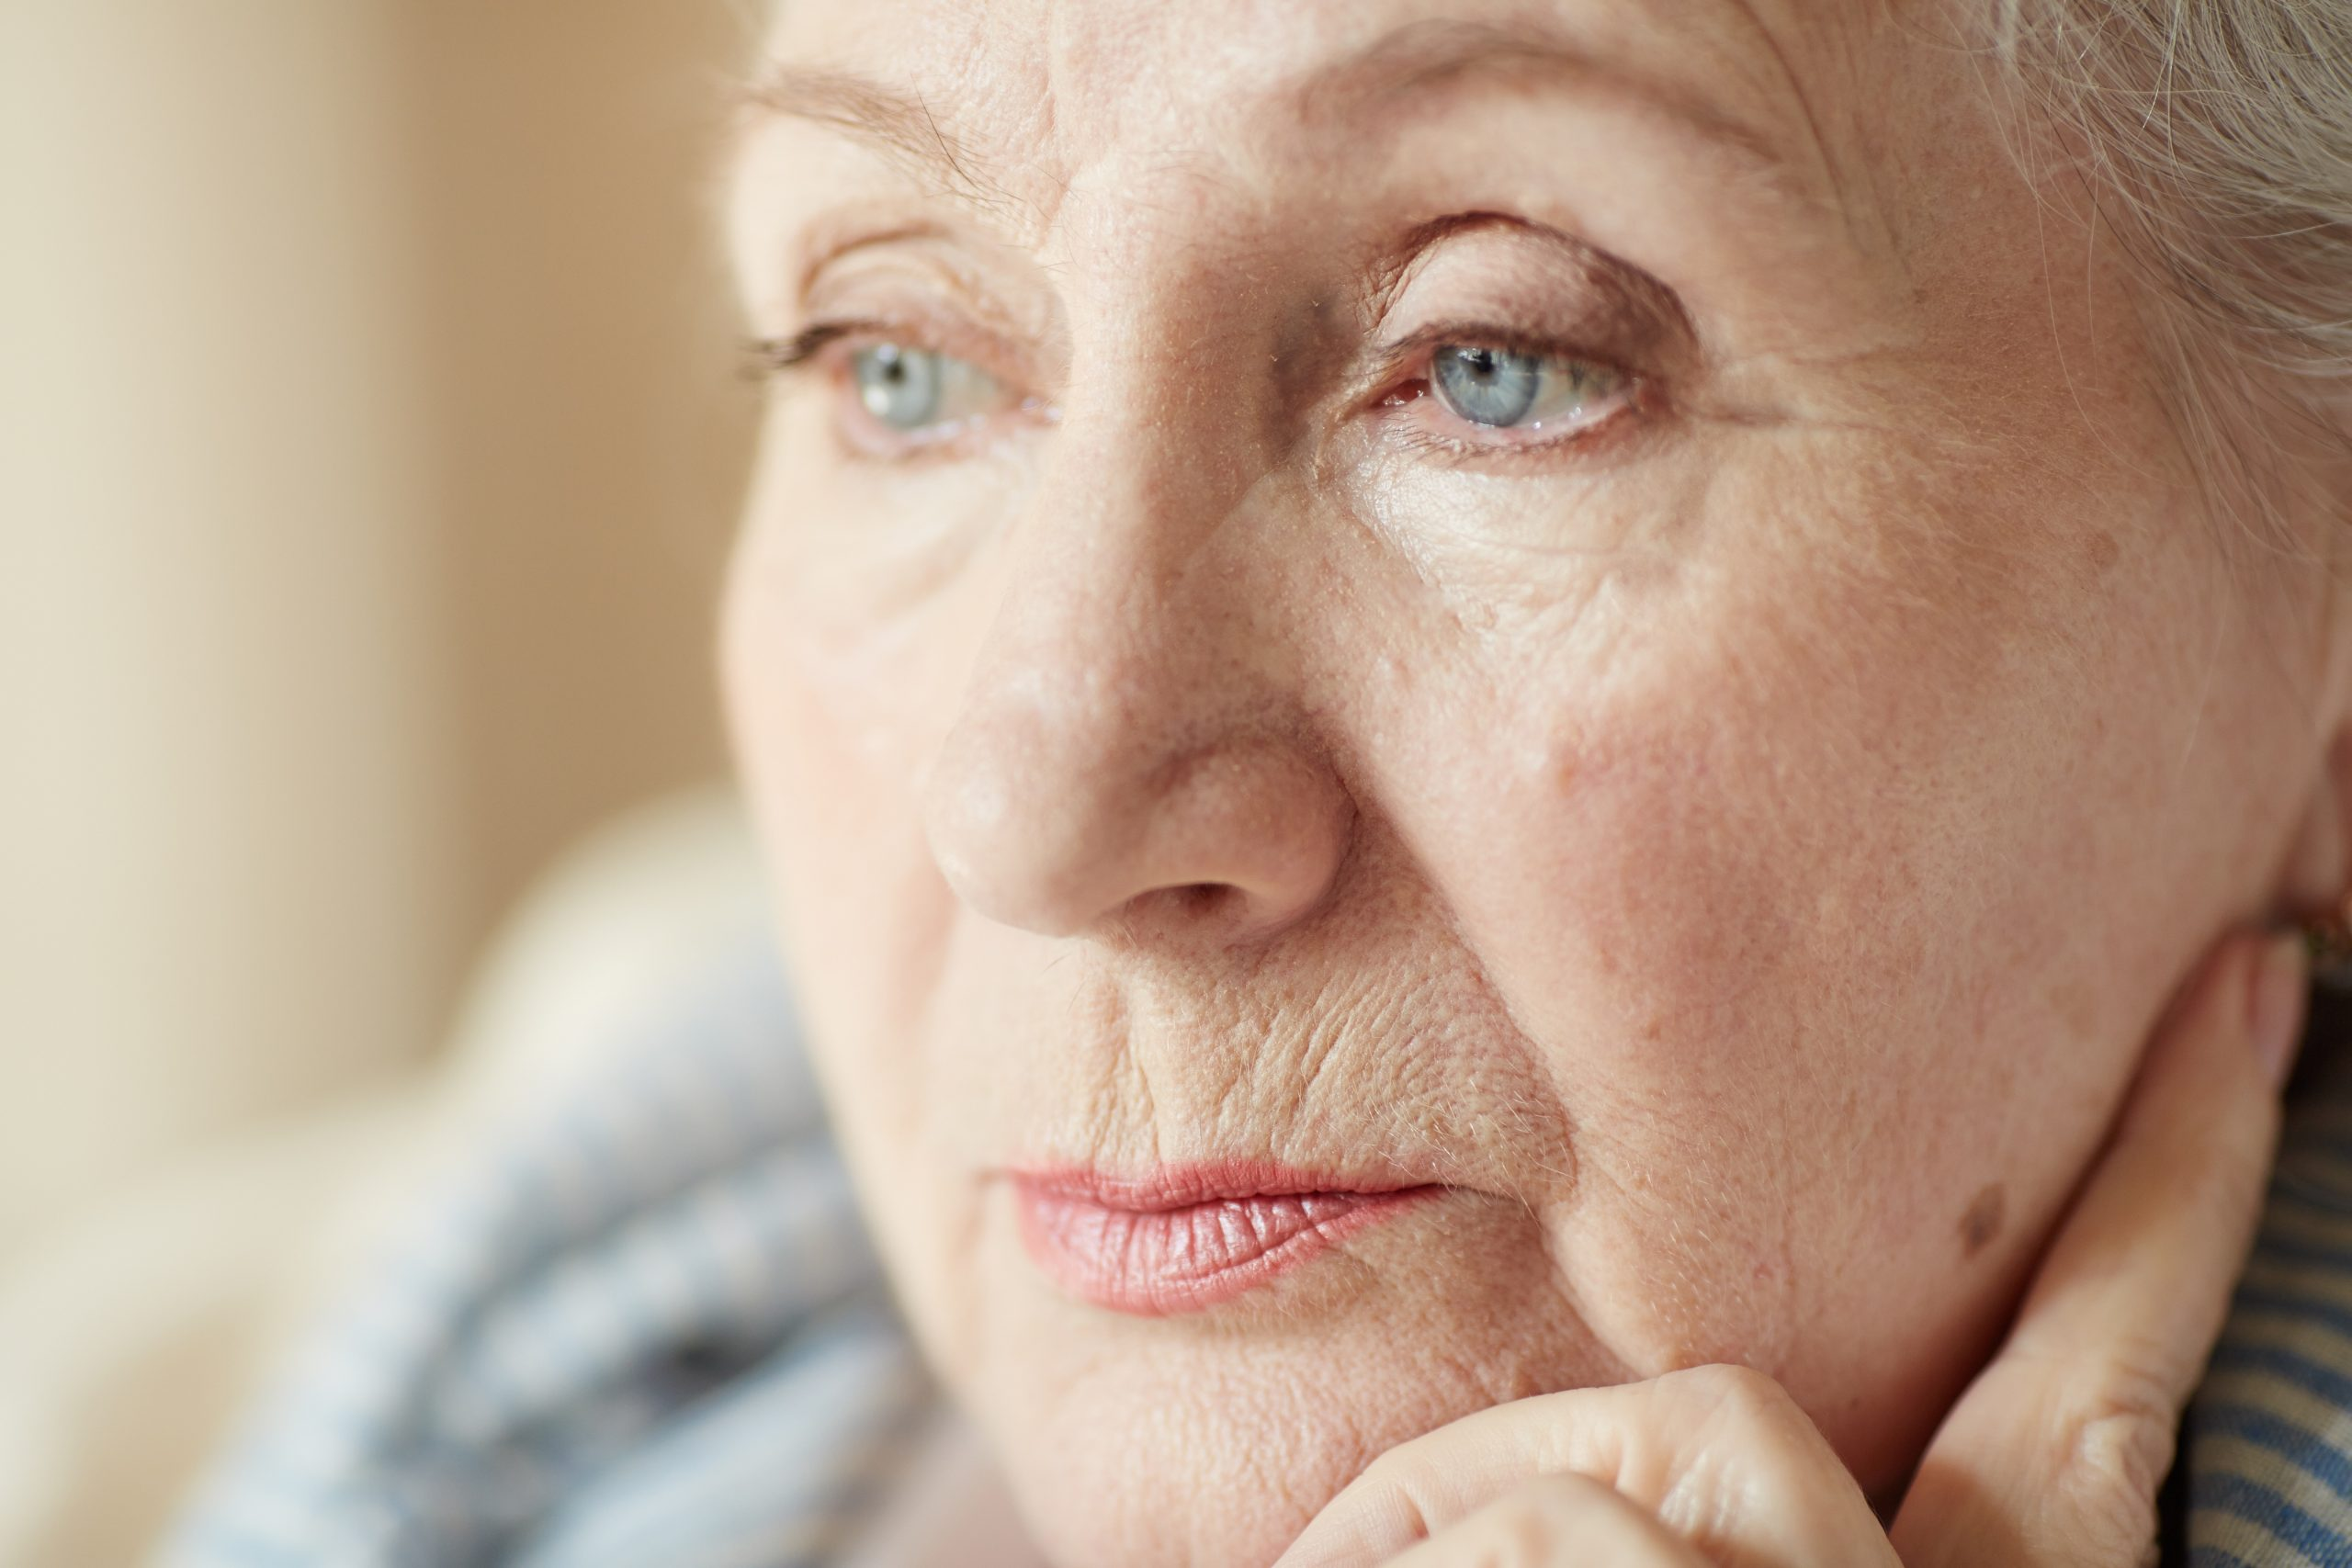 Extreme close-up shot of wrinkled retired woman with light make-up looking away pensively